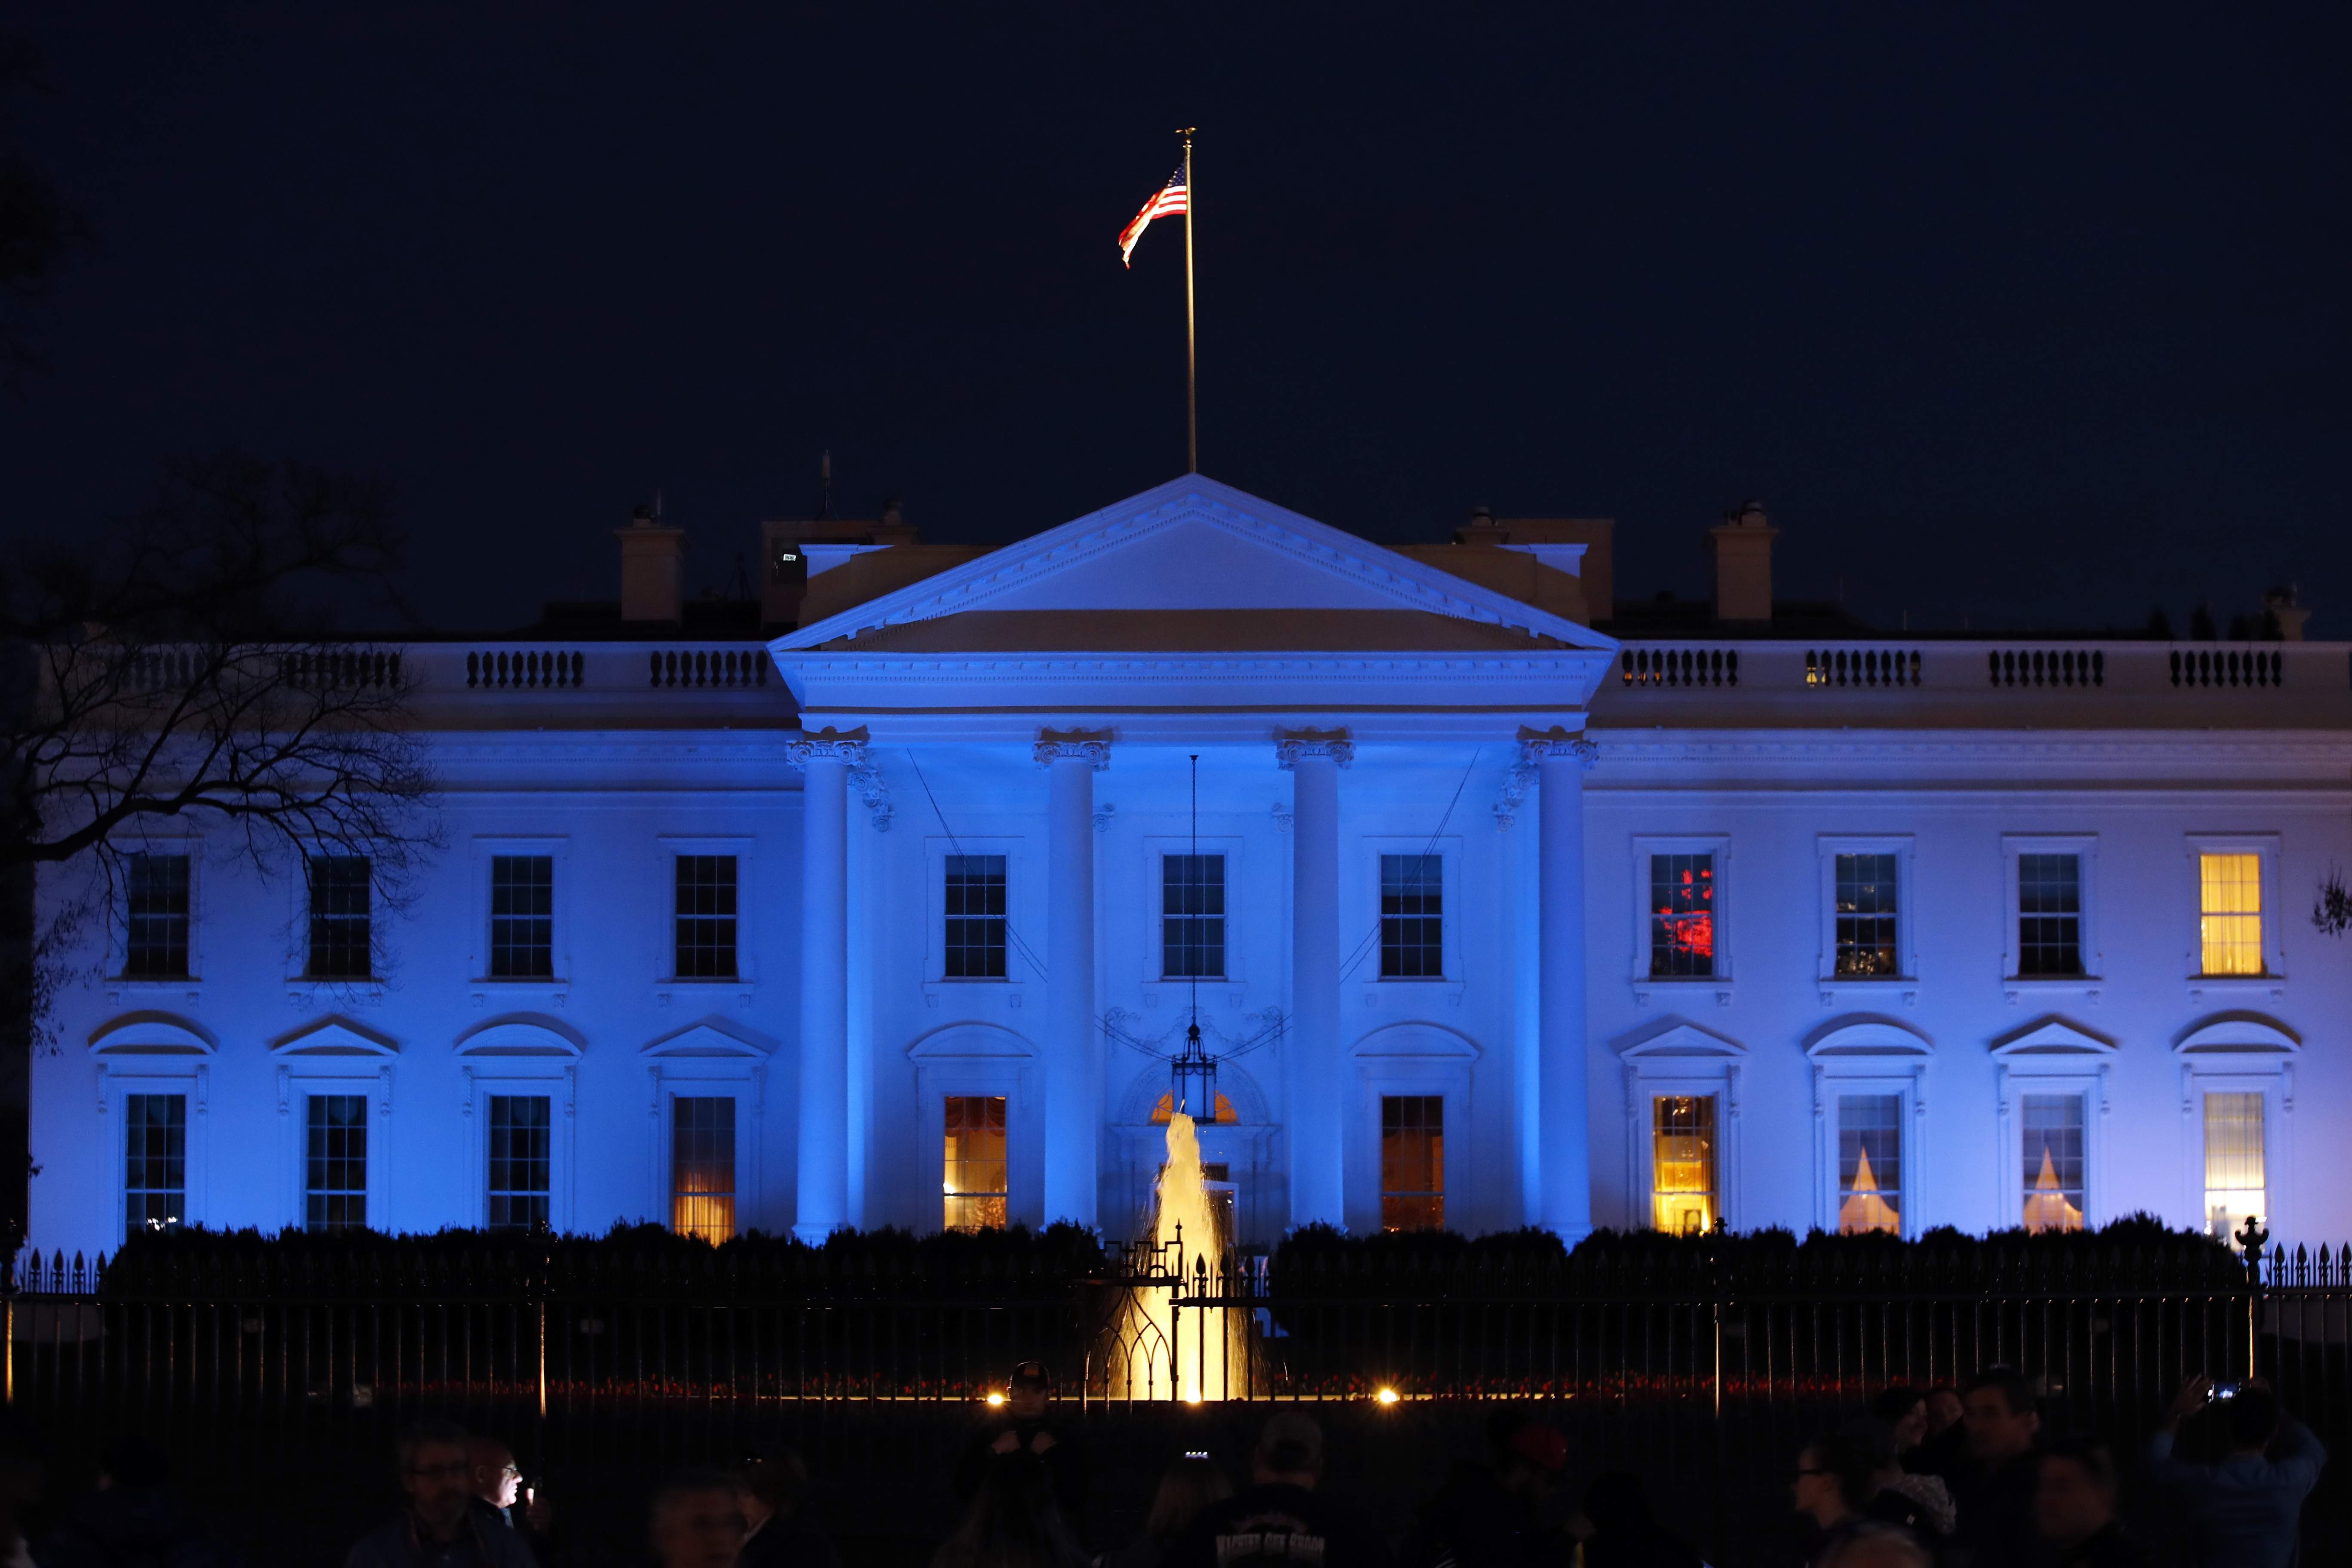 DAY 73 - In this April 2, 2017, file photo, the White House is lit with blue lights in honor of World Autism Awareness Day in Washington. The president was in Washington on day 73, but had no events on his schedule and was not photographed. (AP Photo/Alex Brandon, File)